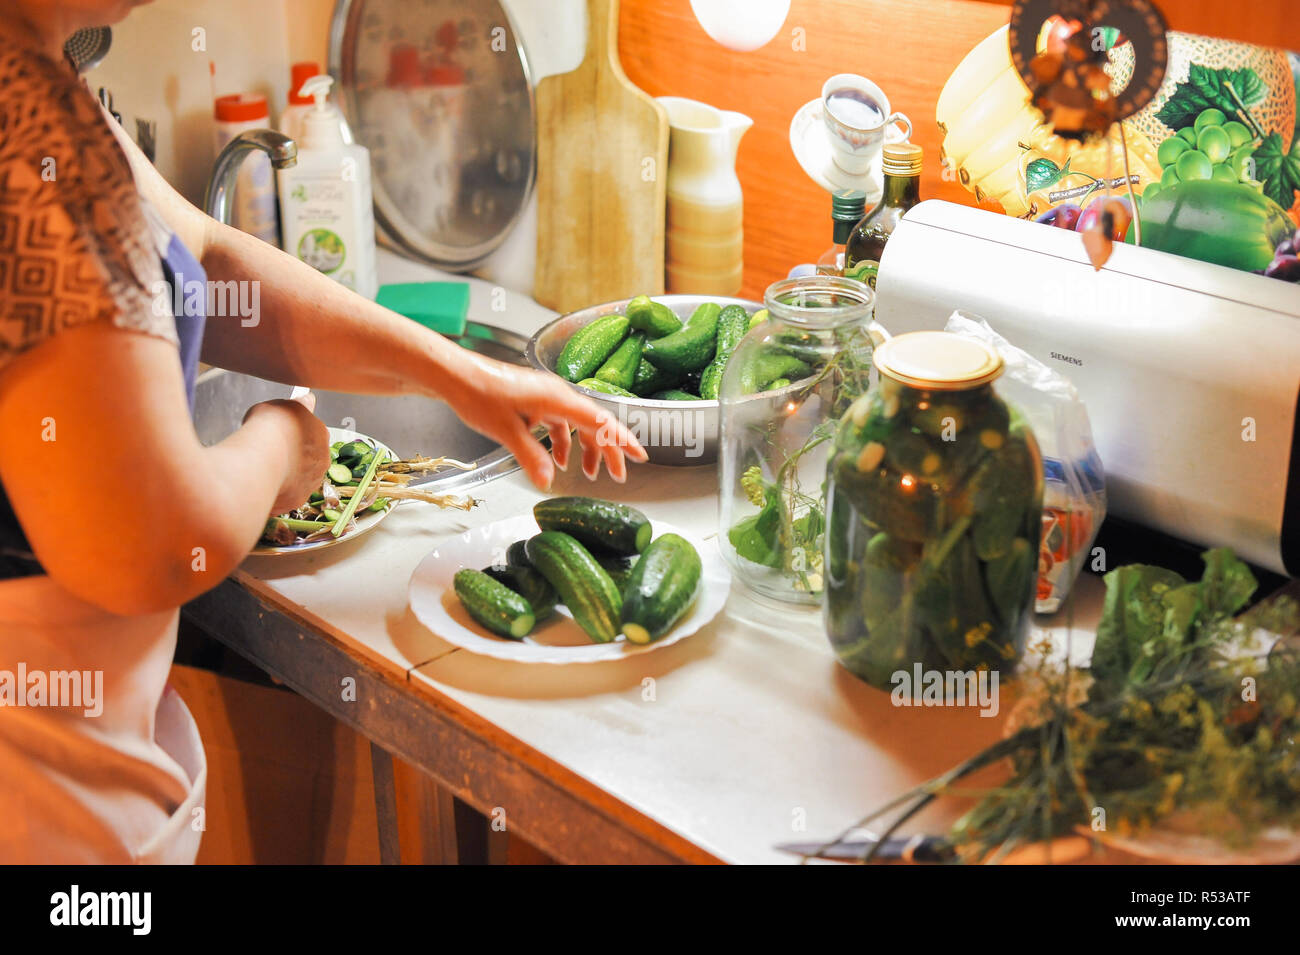 People Are Preparing In The Kitchen Pickling Cucumbers Preparation